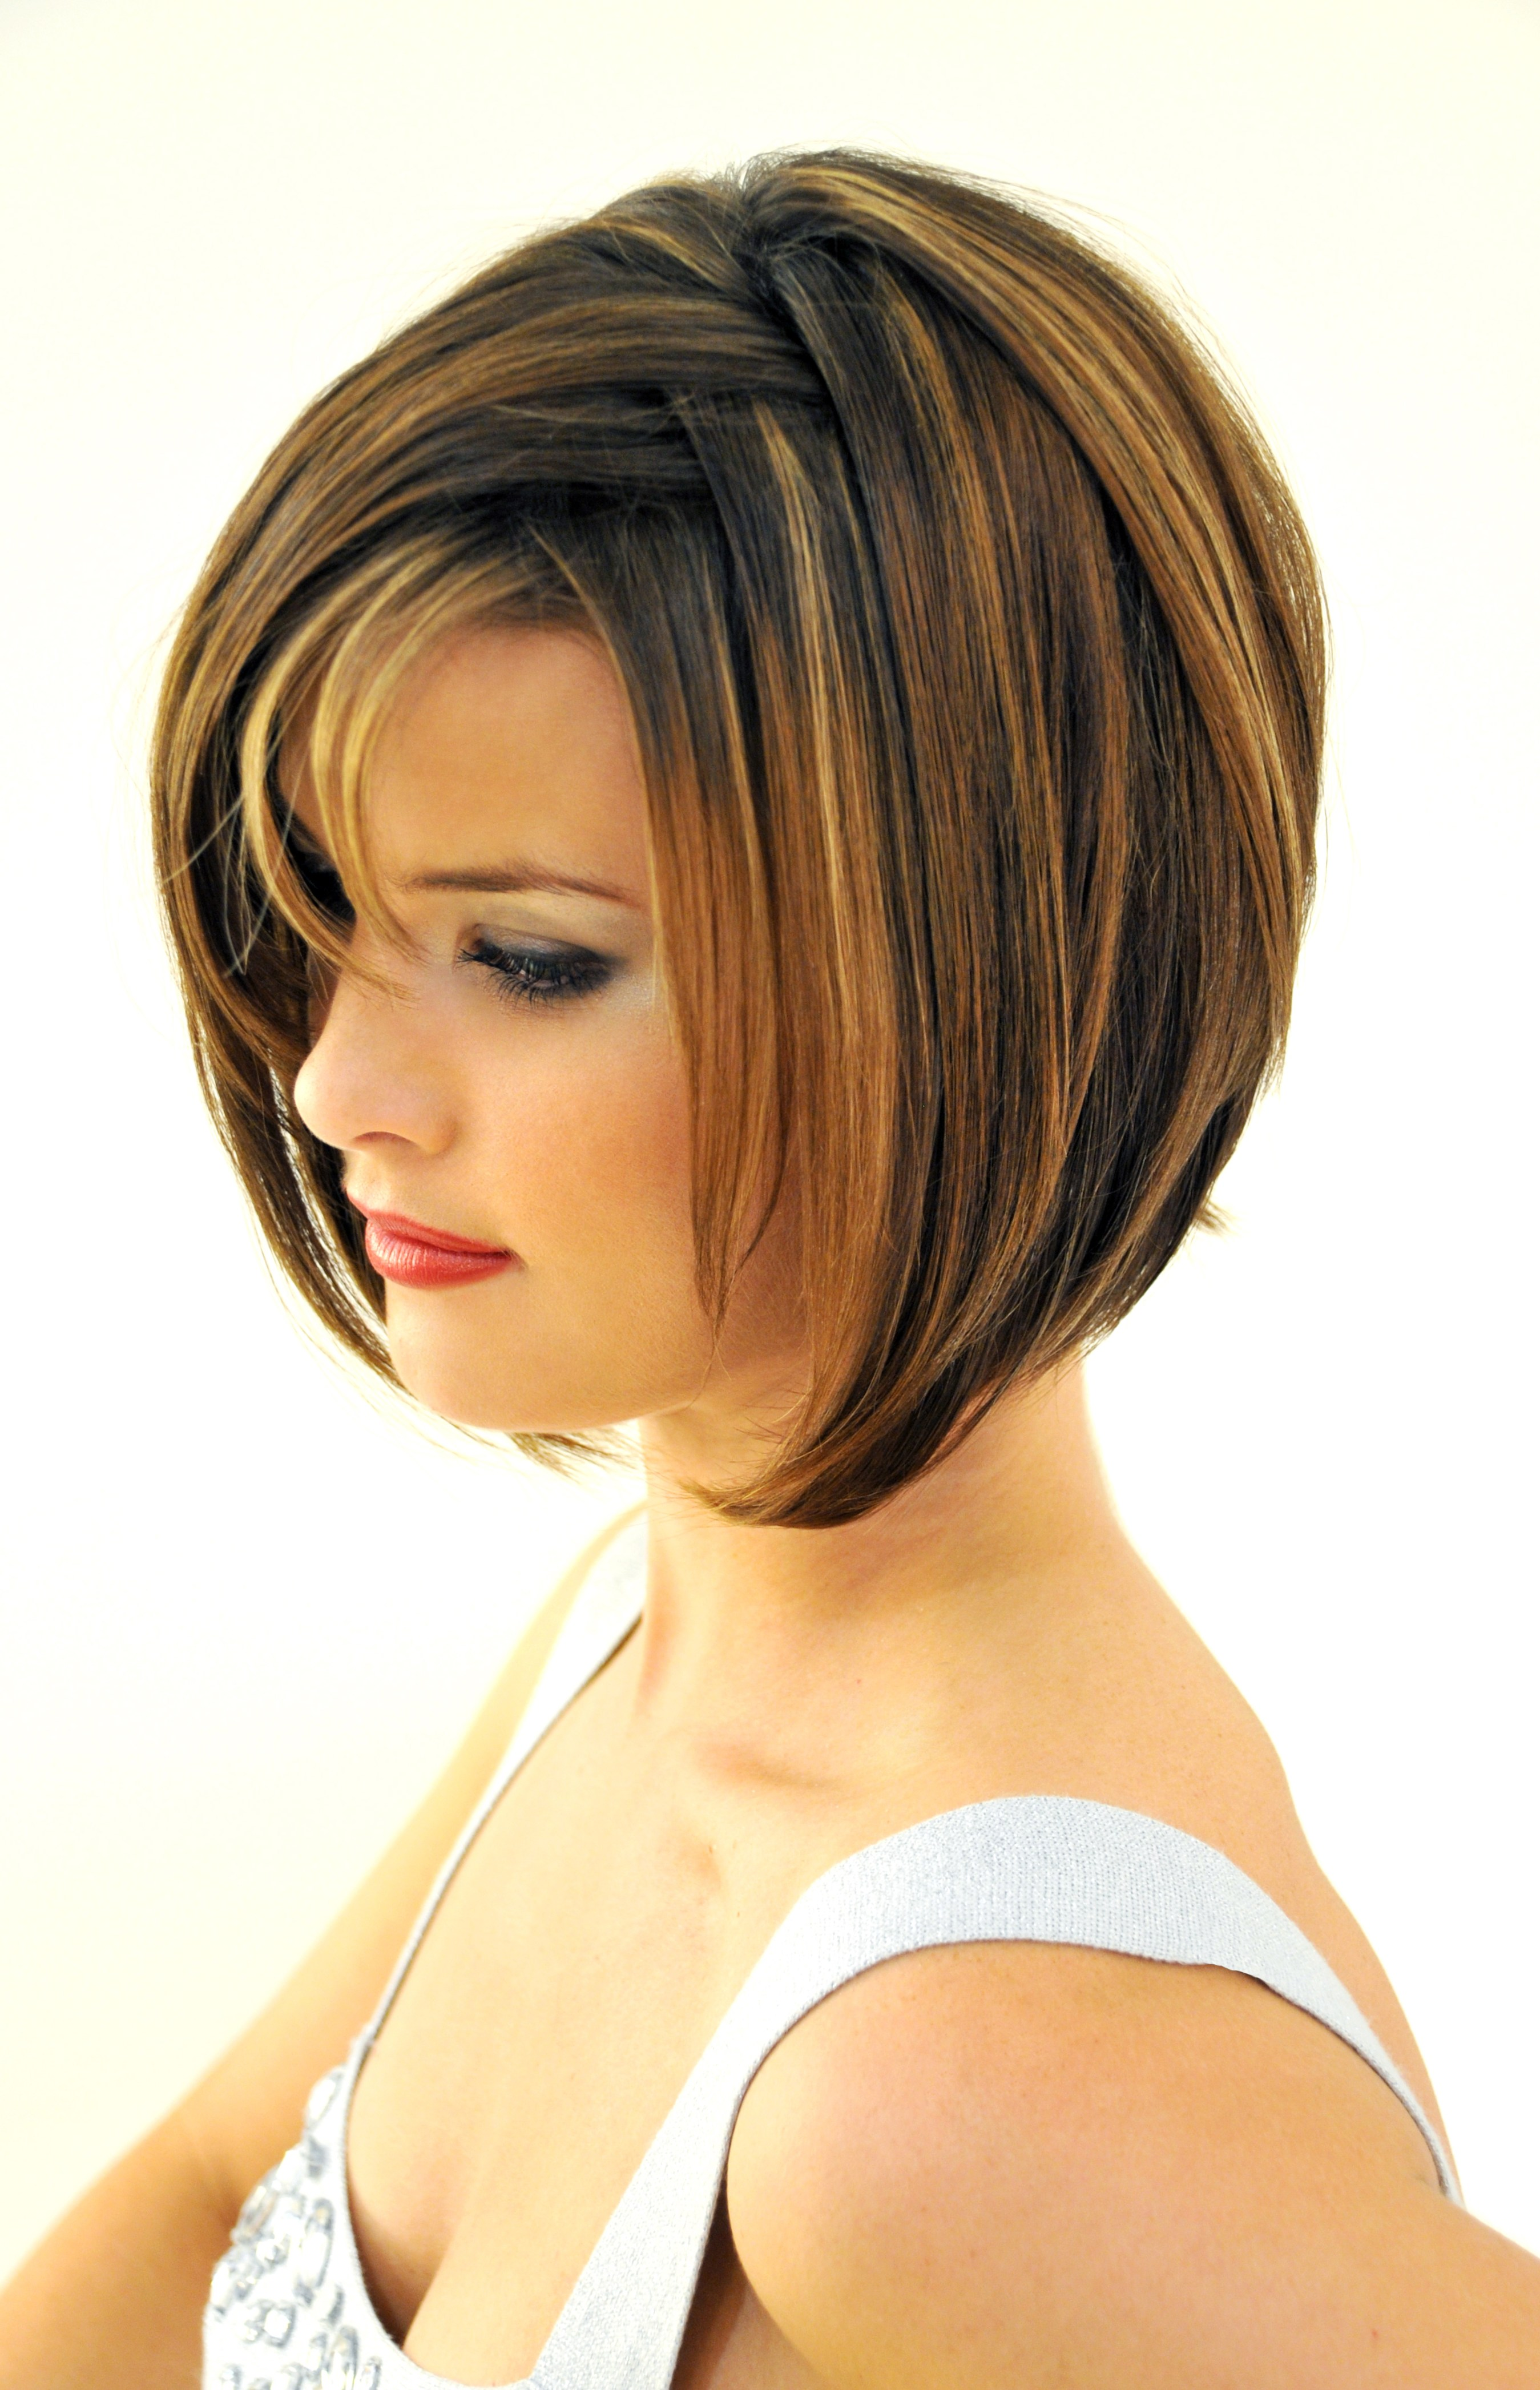 Astonishing Short Bob Hairstyles With Bangs 4 Perfect Ideas For You Talk Hairstyle Inspiration Daily Dogsangcom